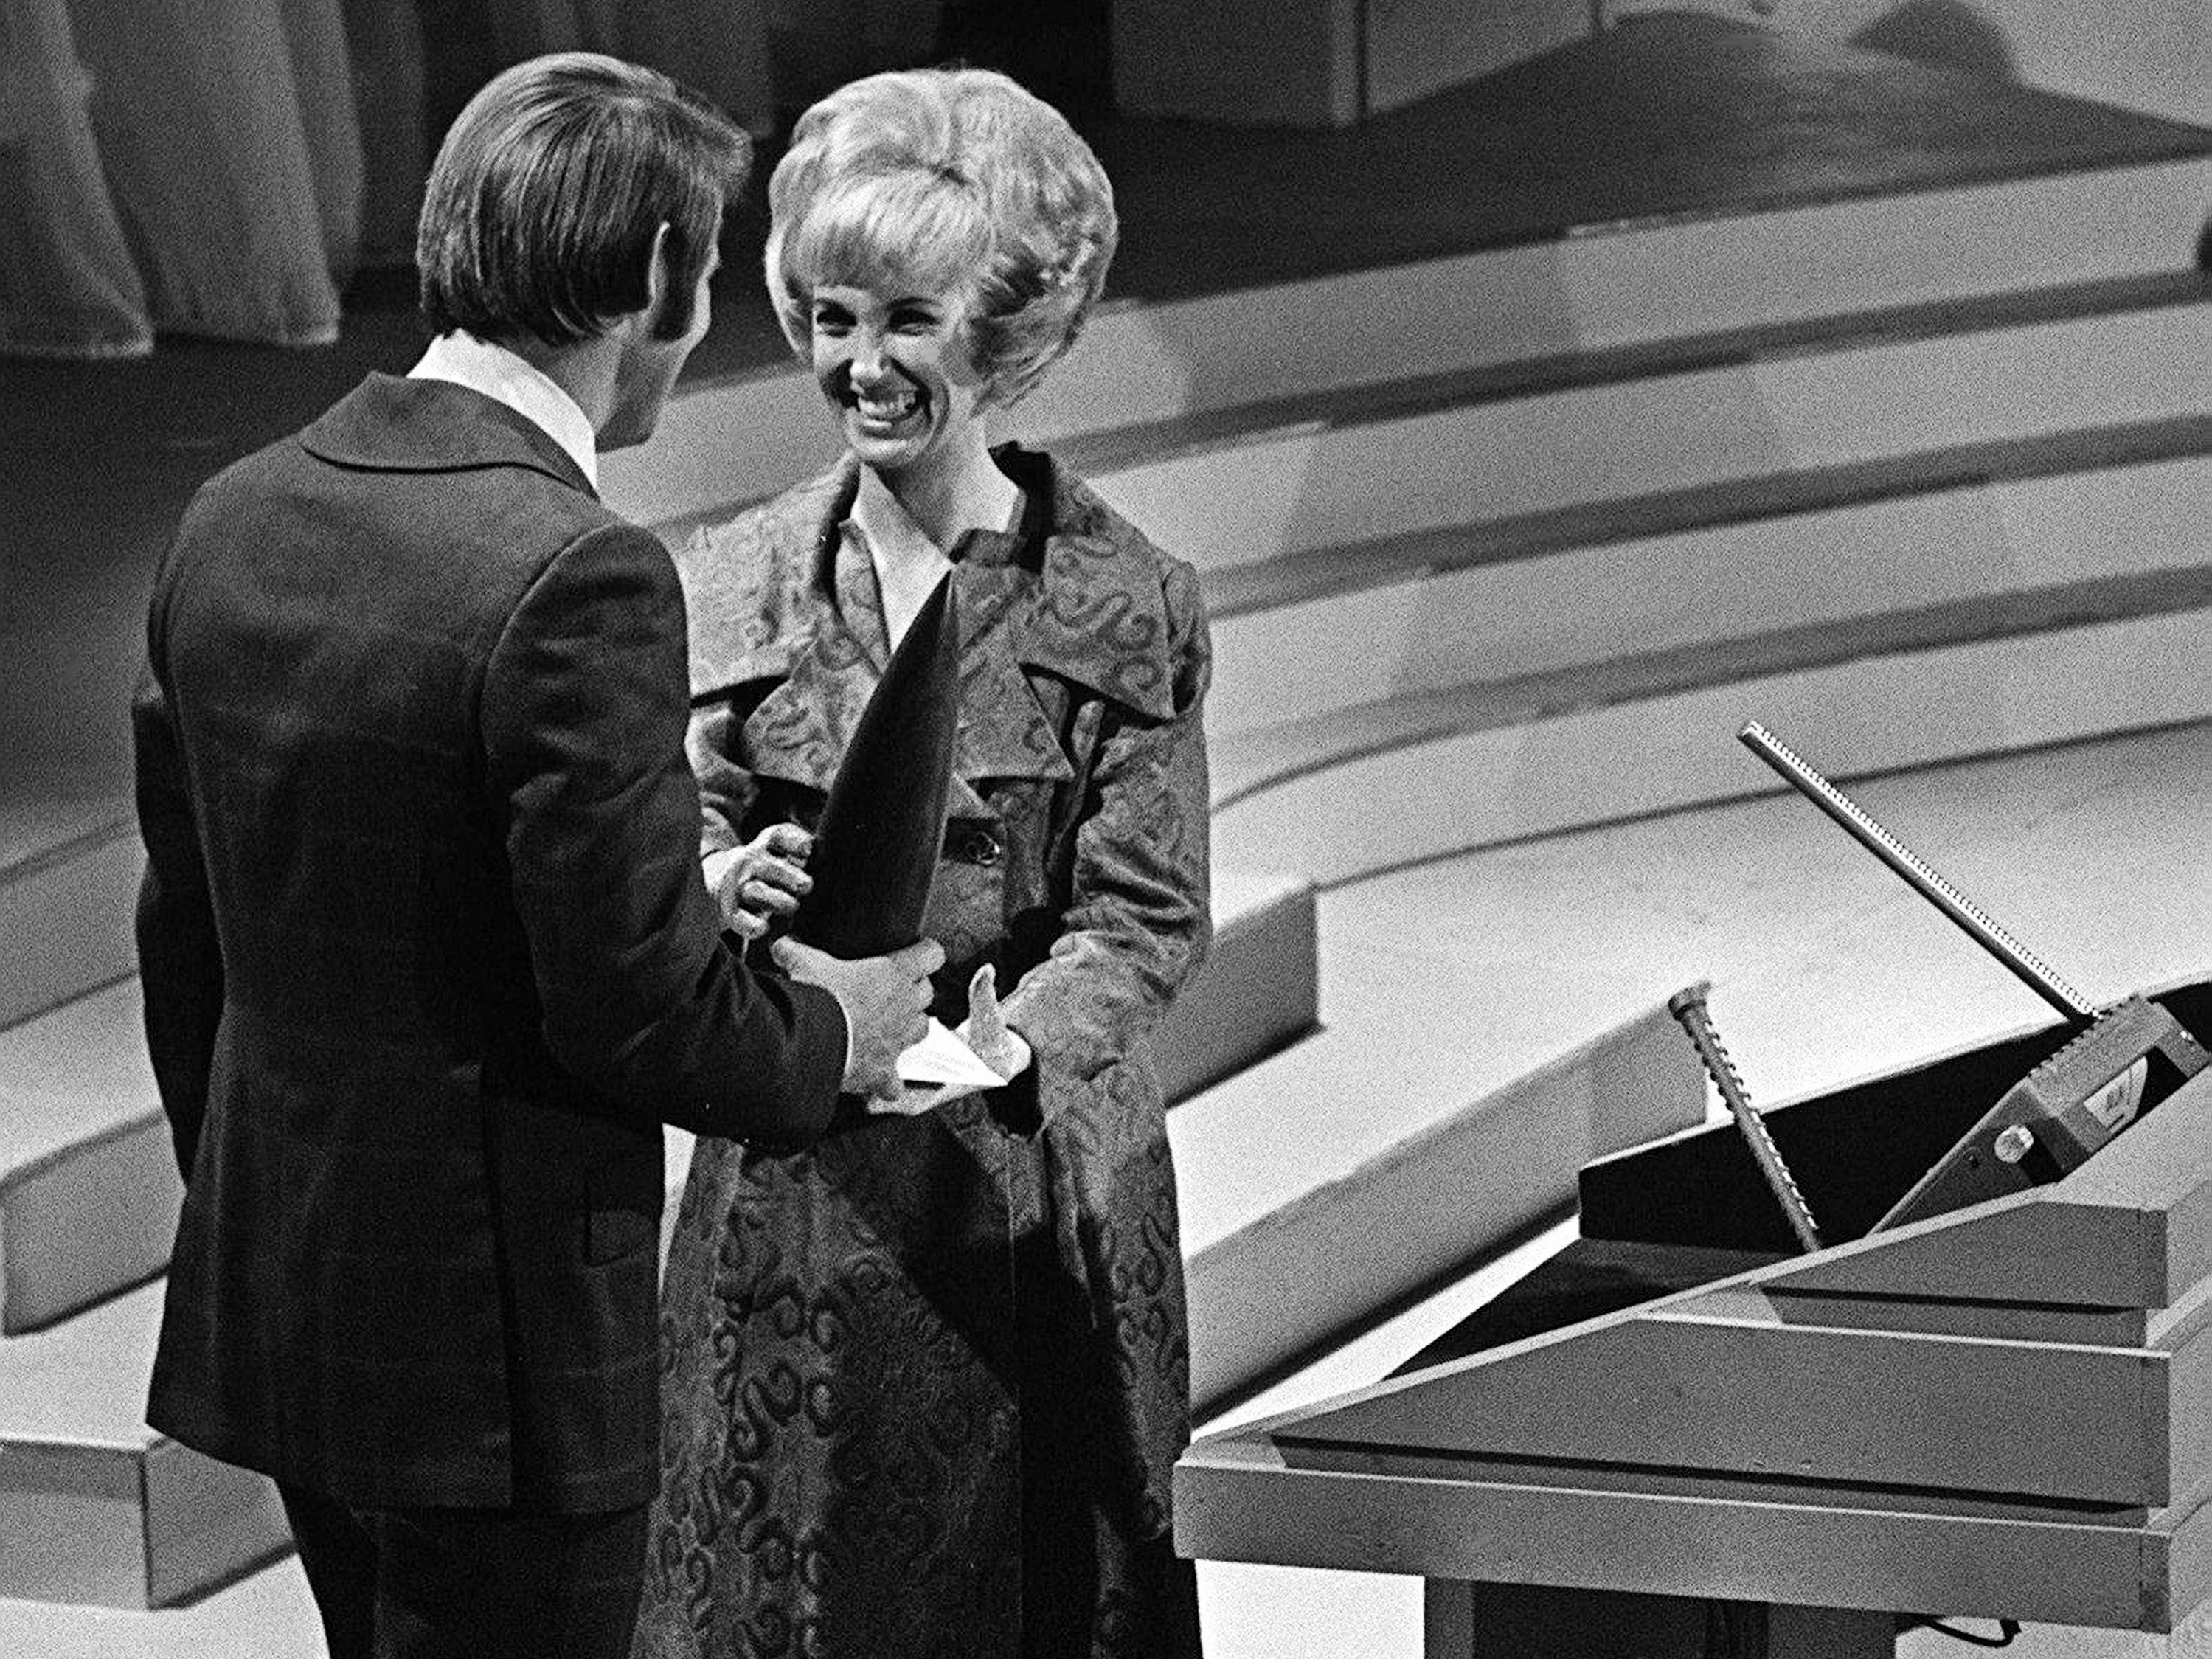 Tammy Wynette accepts the Female Vocalist of the Year award from presenter Glen Campbell during the second annual CMA Awards show at the Ryman Auditorium on Oct. 18, 1968.